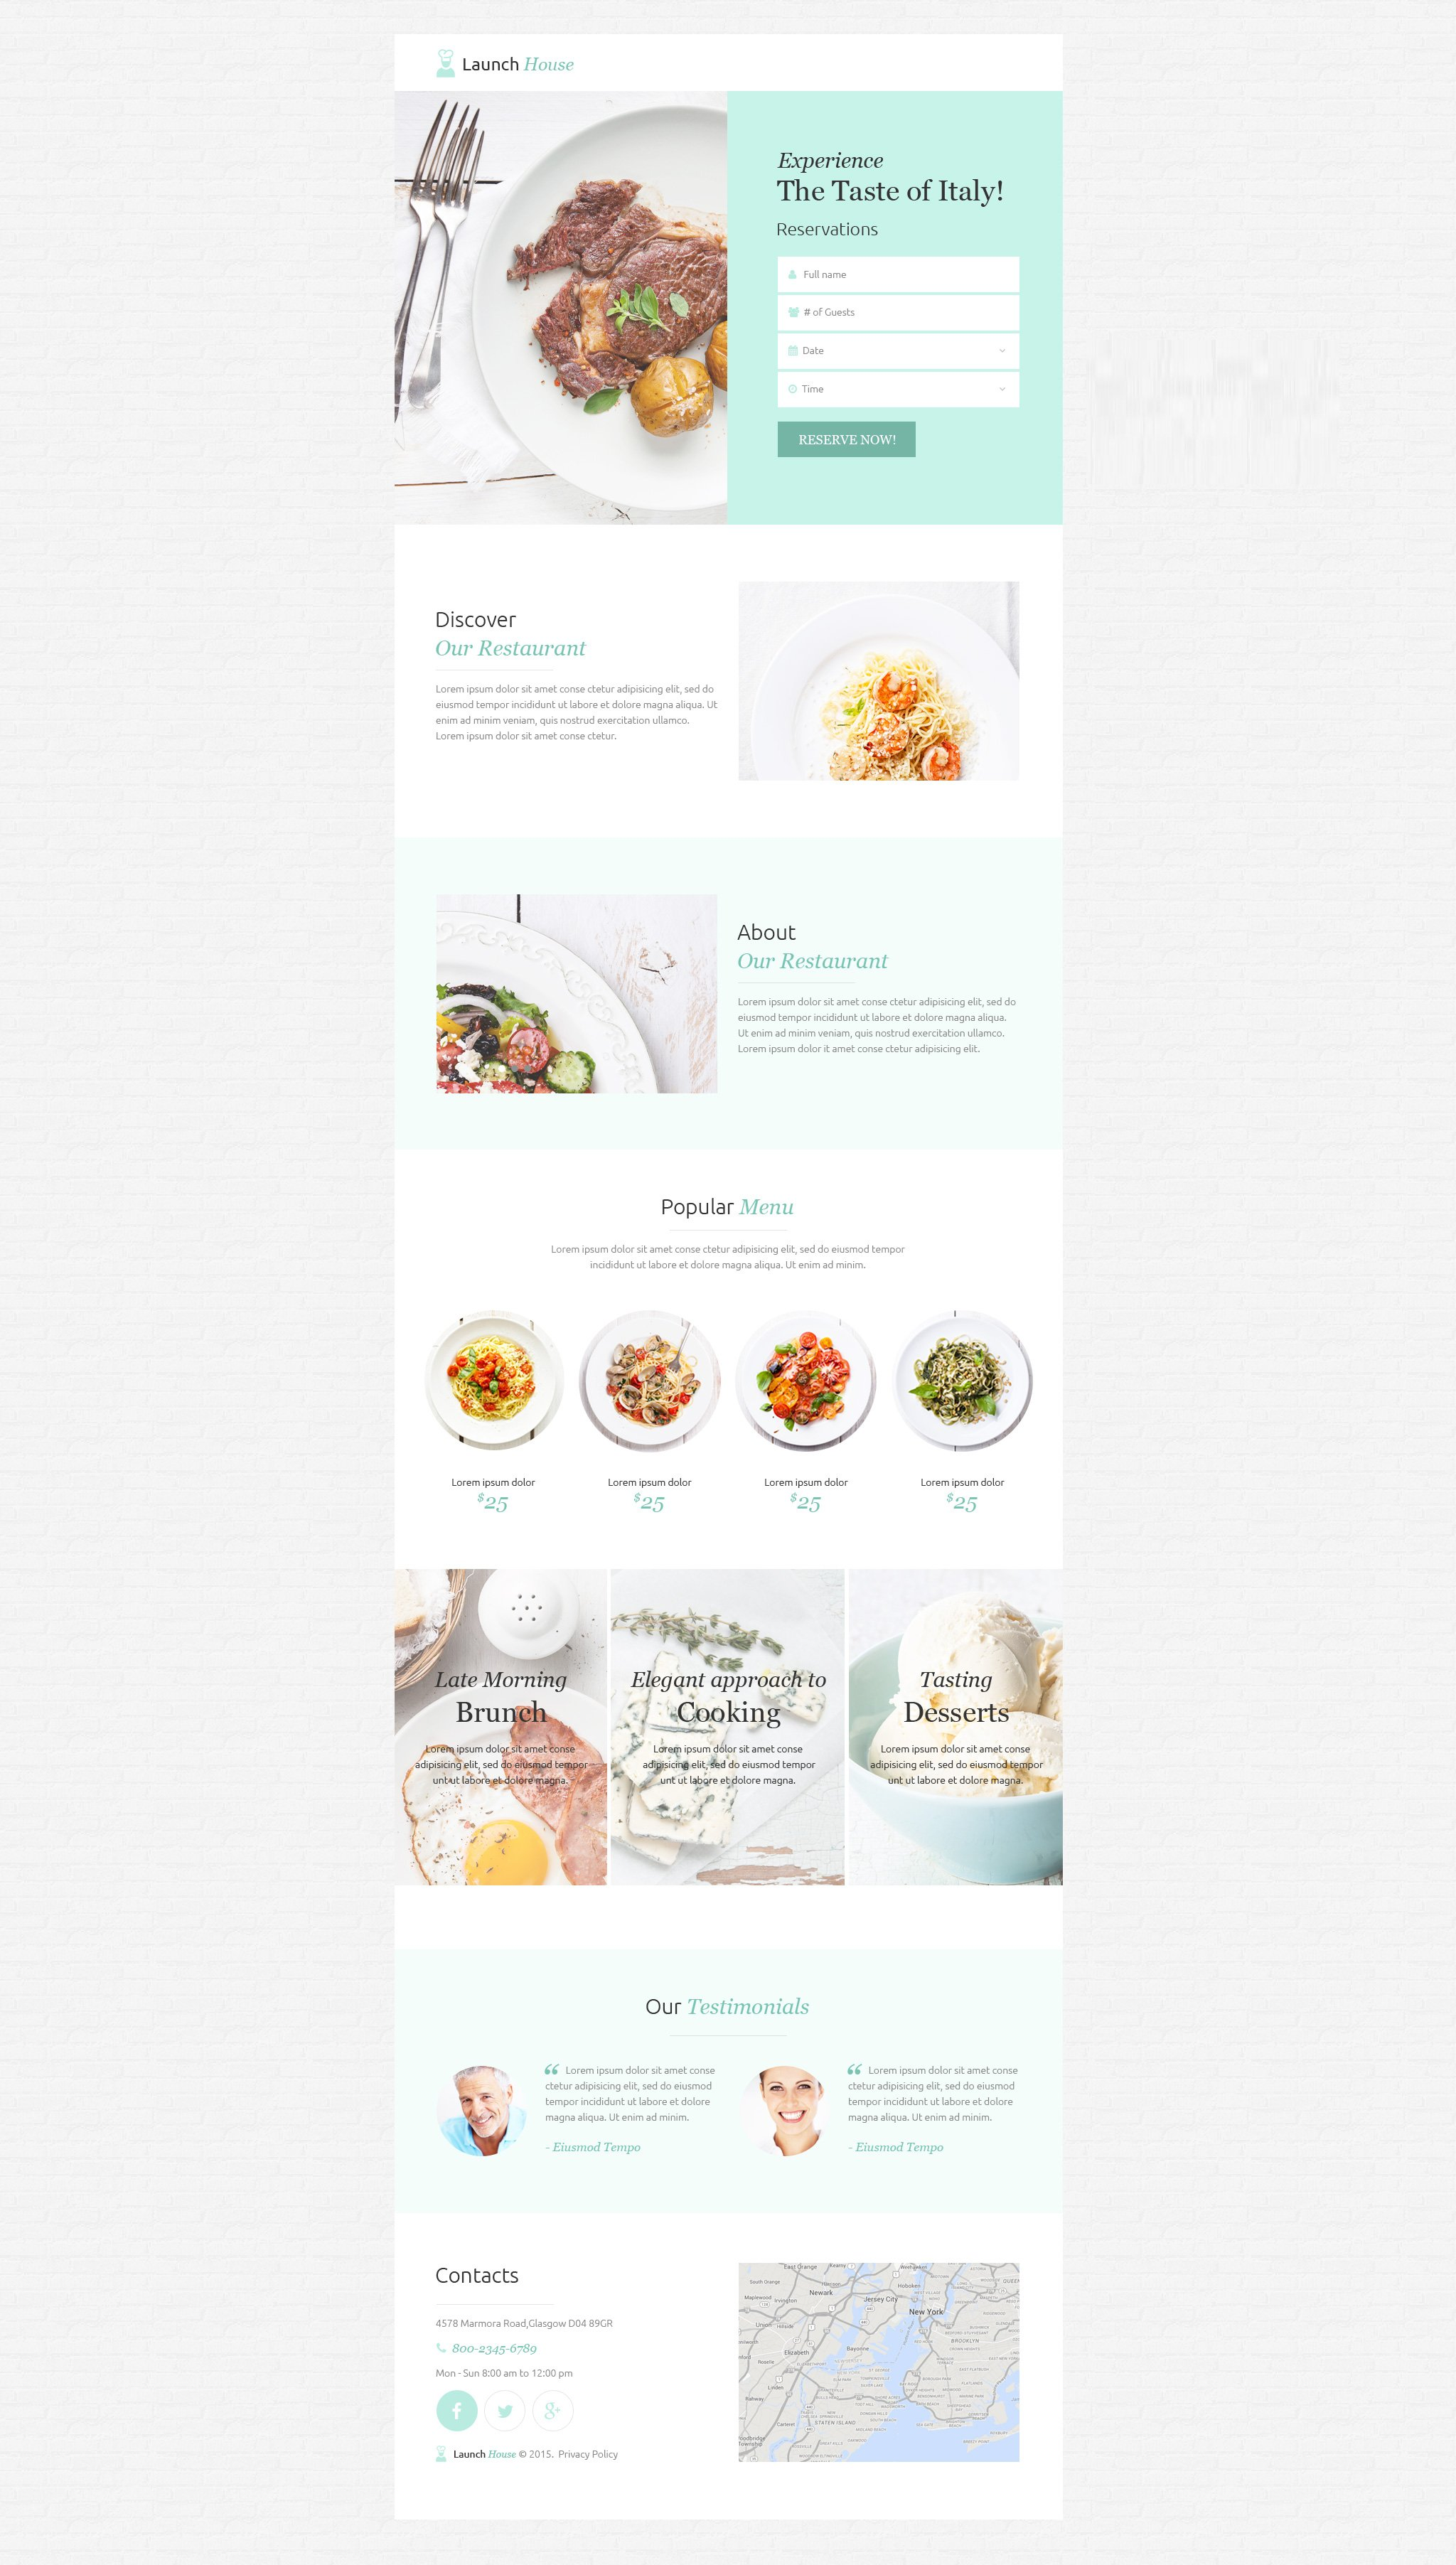 The Launch House Restaurant Unbounce Template Design 53206, one of the best Unbounce templates of its kind (cafe and restaurant), also known as Launch House restaurant Unbounce template, fish Unbounce template, marine Unbounce template, products Unbounce template, calamari Unbounce template, squid Unbounce template, oyster Unbounce template, shrimp Unbounce template, services Unbounce template, cafe Unbounce template, food Unbounce template, drink Unbounce template, menu Unbounce template, waiters Unbounce template, dish Unbounce template, taste Unbounce template, tasty Unbounce template, flavor Unbounce template, reservation and related with Launch House restaurant, fish, marine, products, calamari, squid, oyster, shrimp, services, cafe, food, drink, menu, waiters, dish, taste, tasty, flavor, reservation, etc.